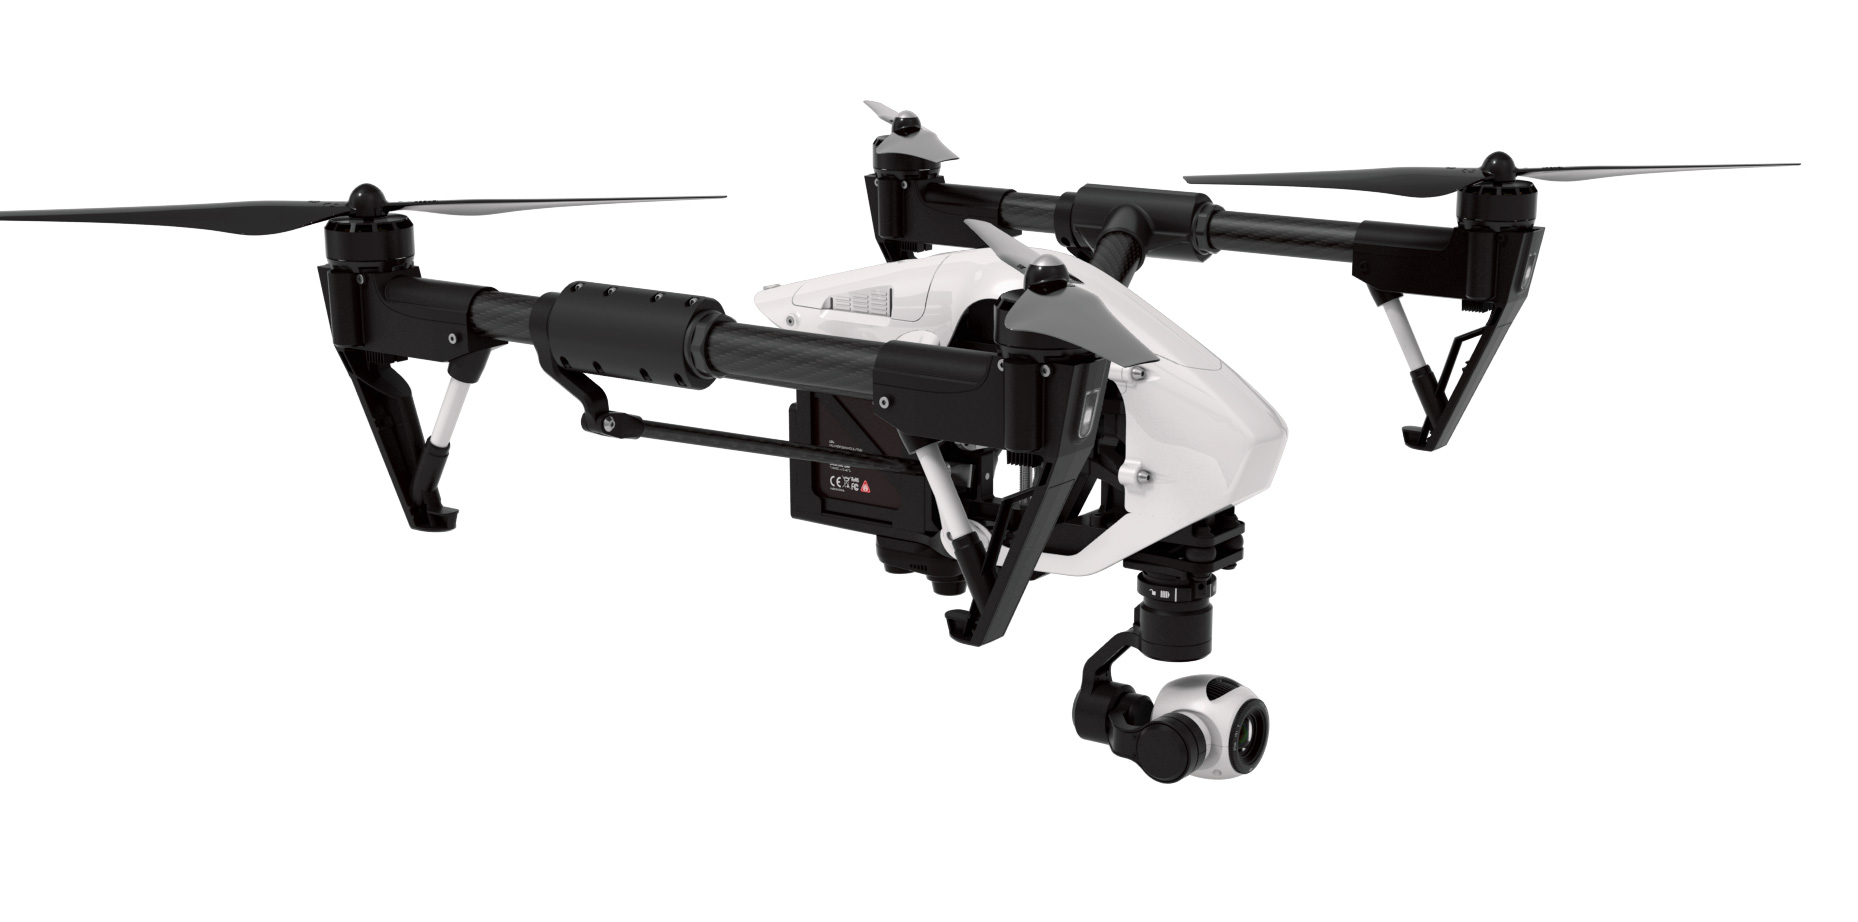 cheap drones with Dji Inspire 1 Hollywood Calibre Drone 3000 on Hormigas Culonasbig Butts Ants Atta Laevigata in addition Shilin Night Market moreover Holy Stone Rc Drone Review likewise Infinix Hot 4 Pro X556 Specs Price together with 532195.